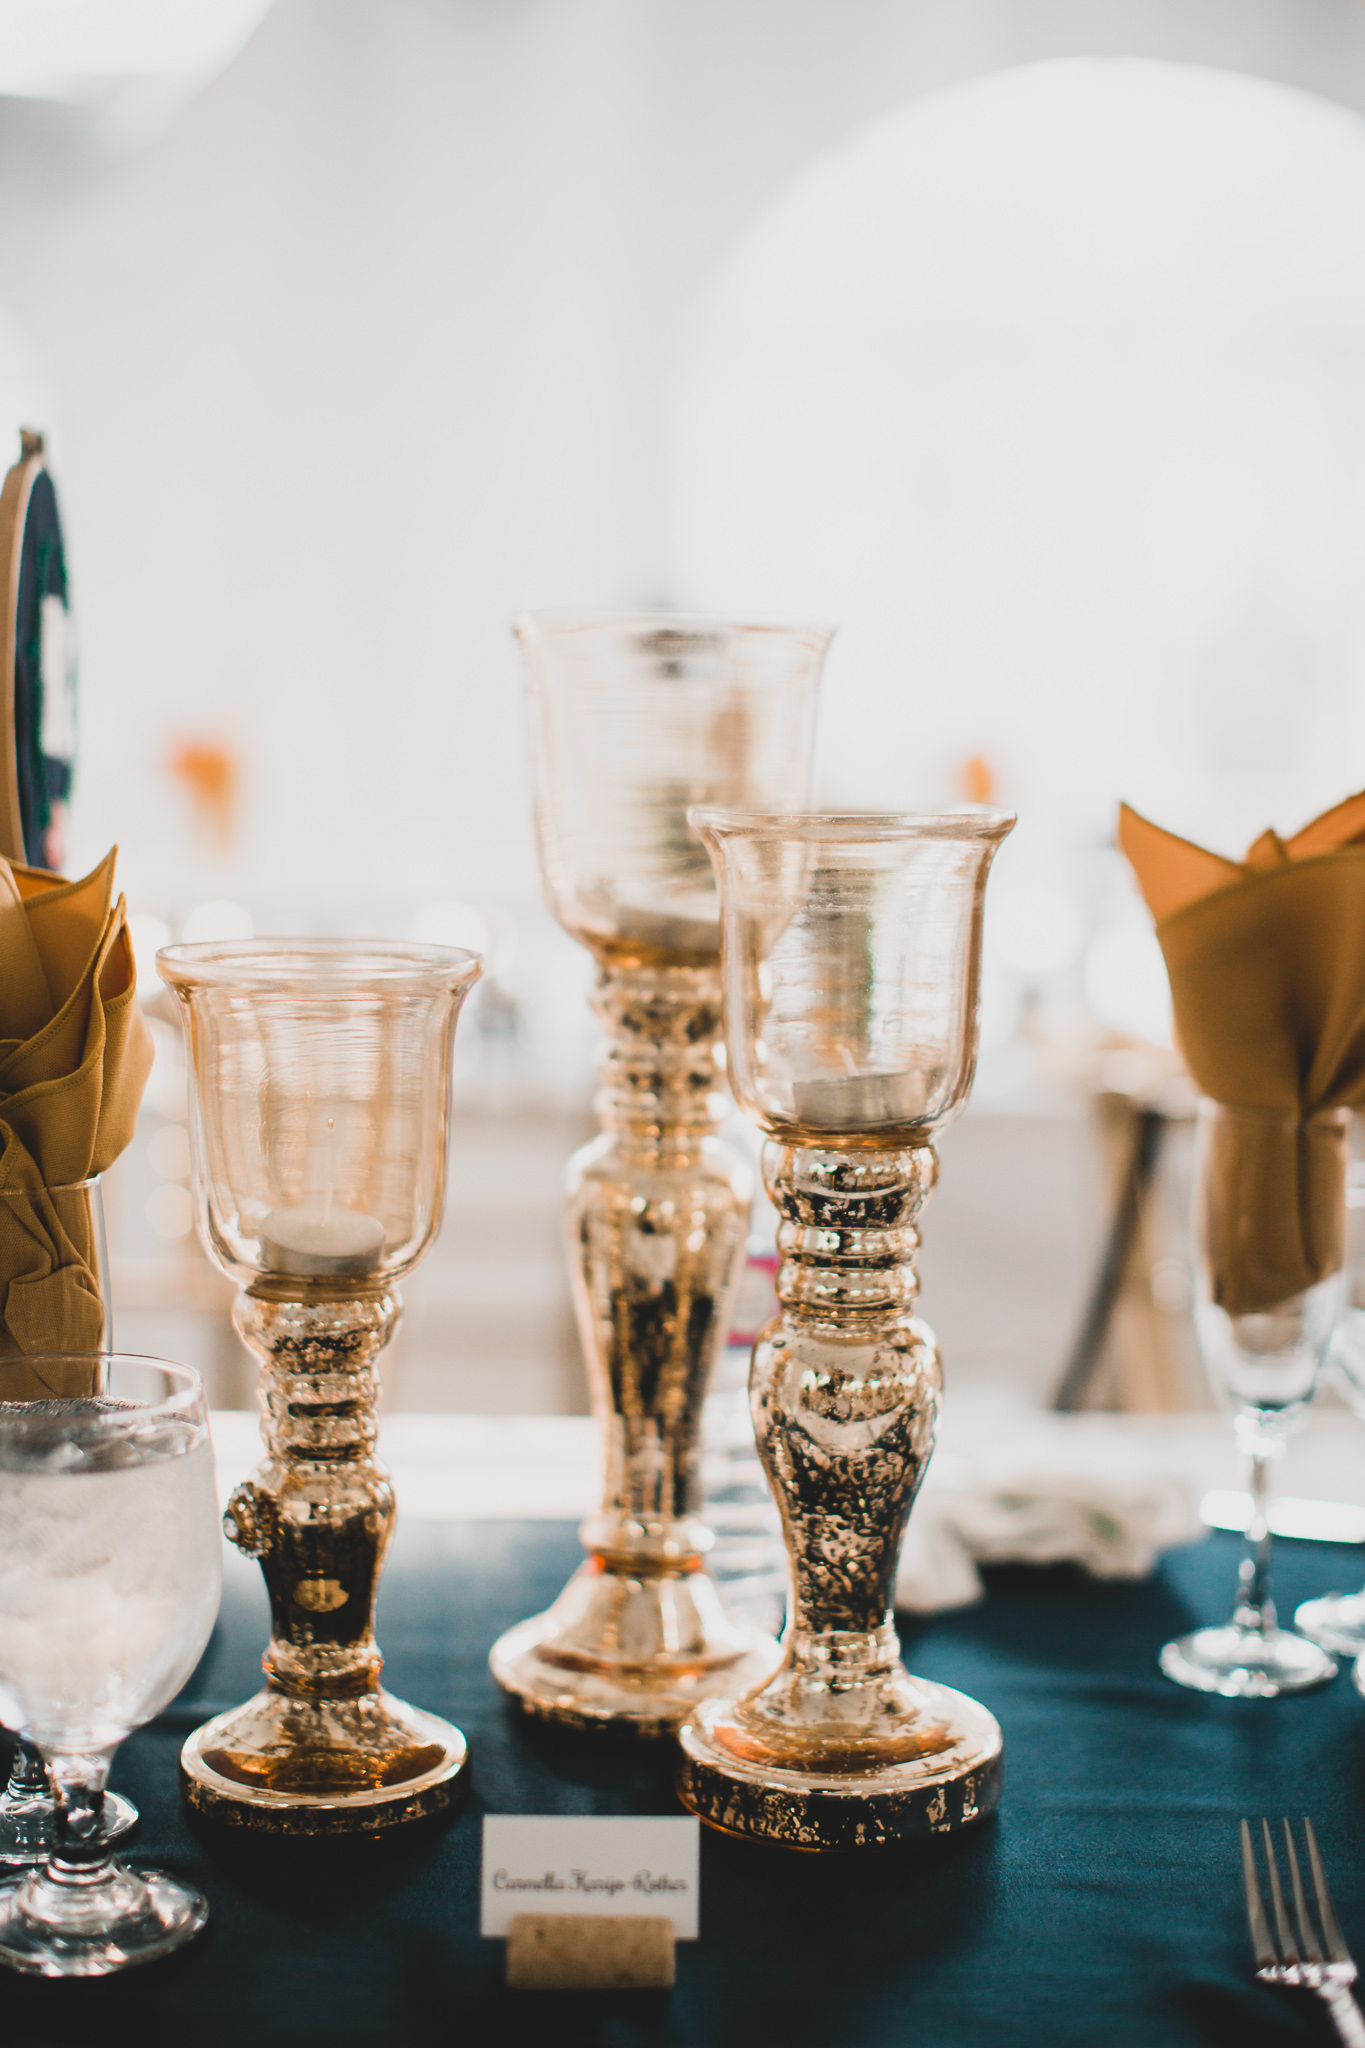 Modern and classic wedding details